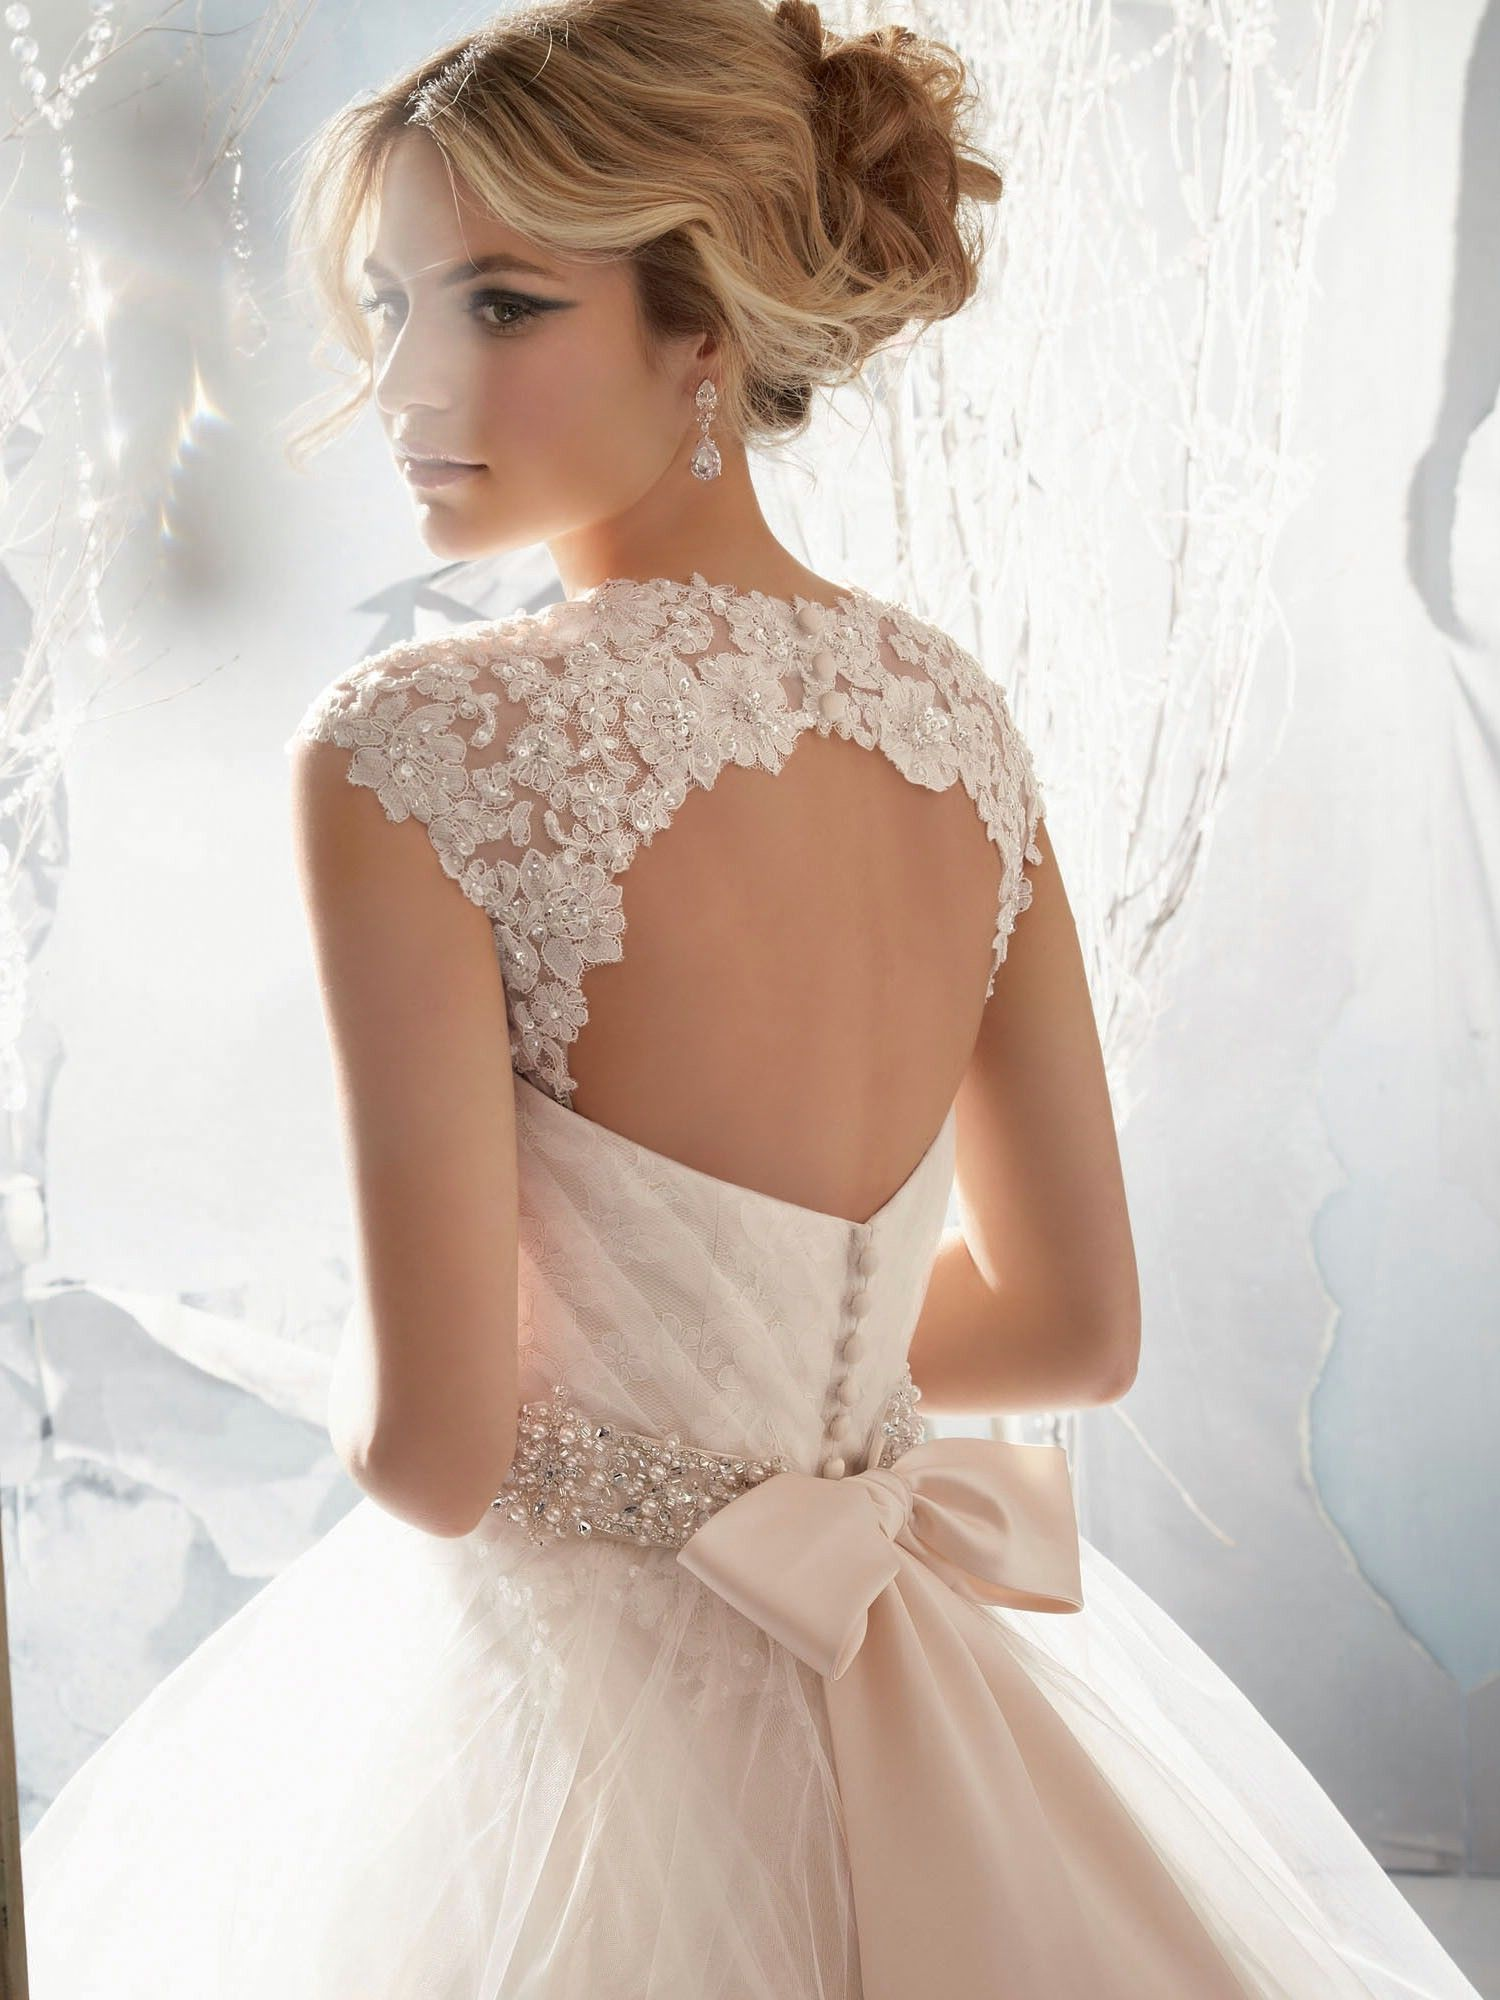 Found on Weddingbeecom Adding straps match with front